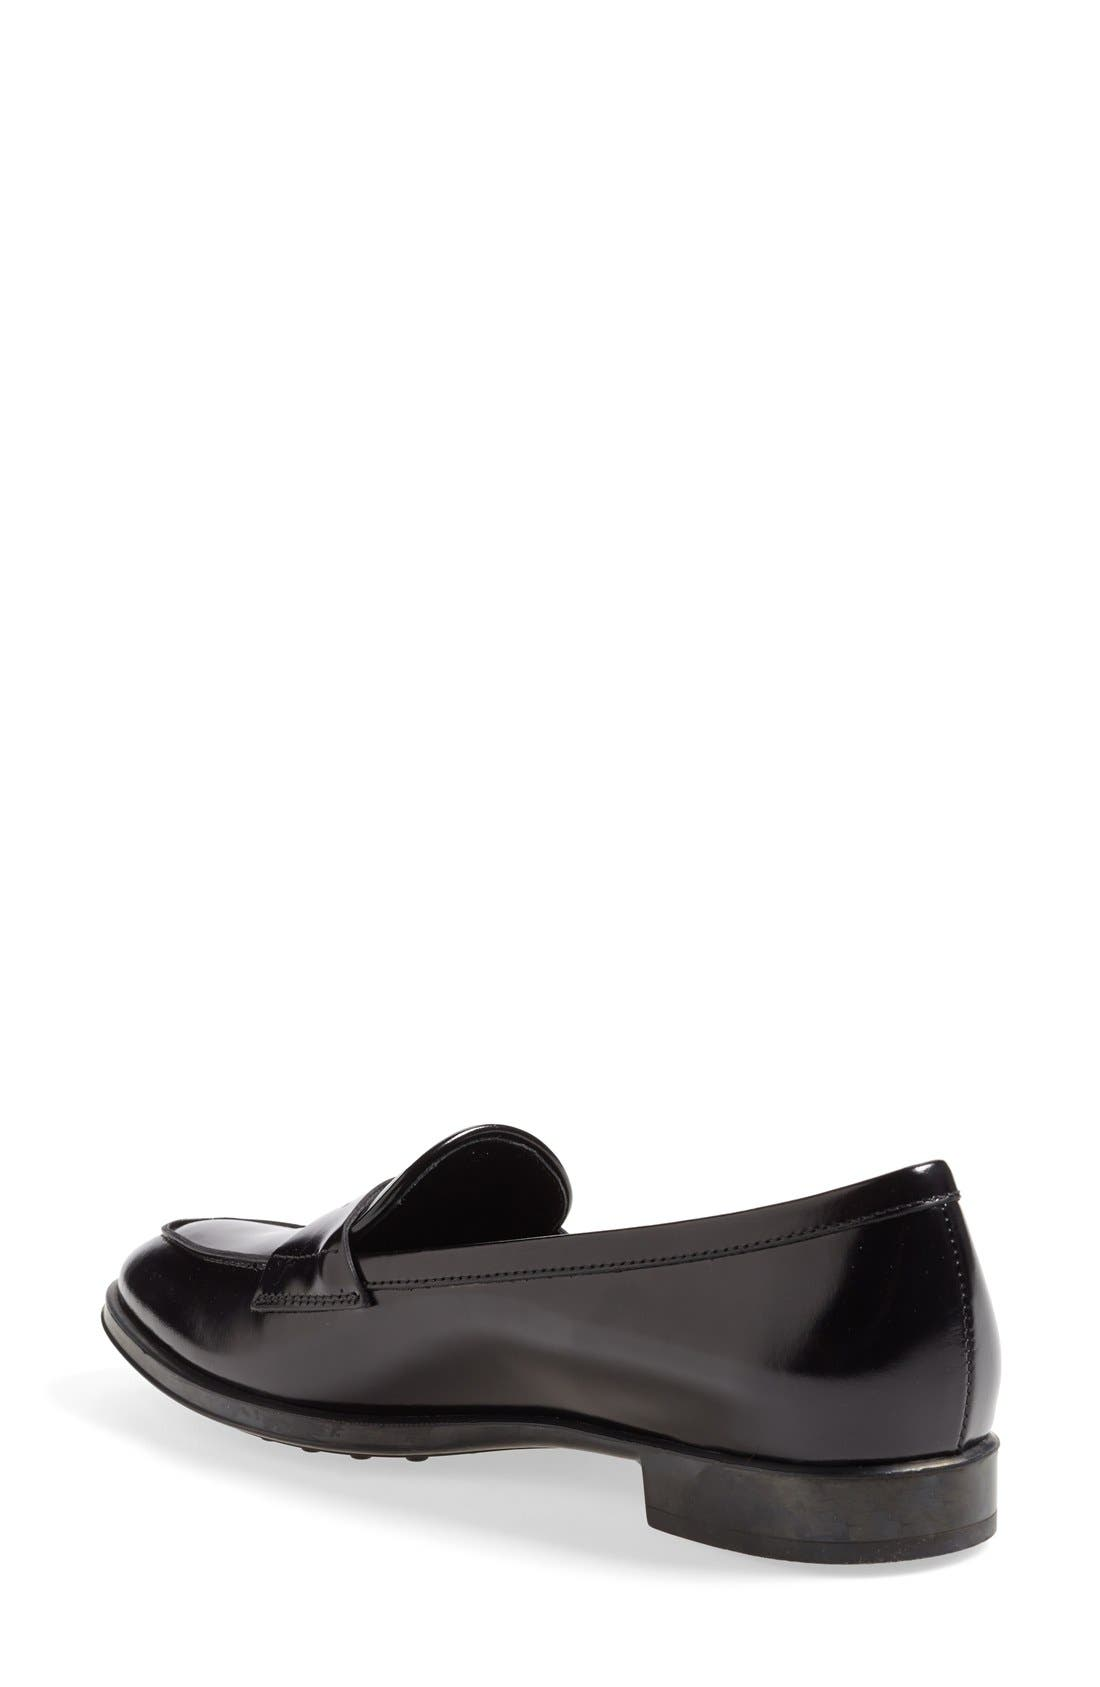 Alternate Image 2  - Tod's Leather Penny Loafer (Women)